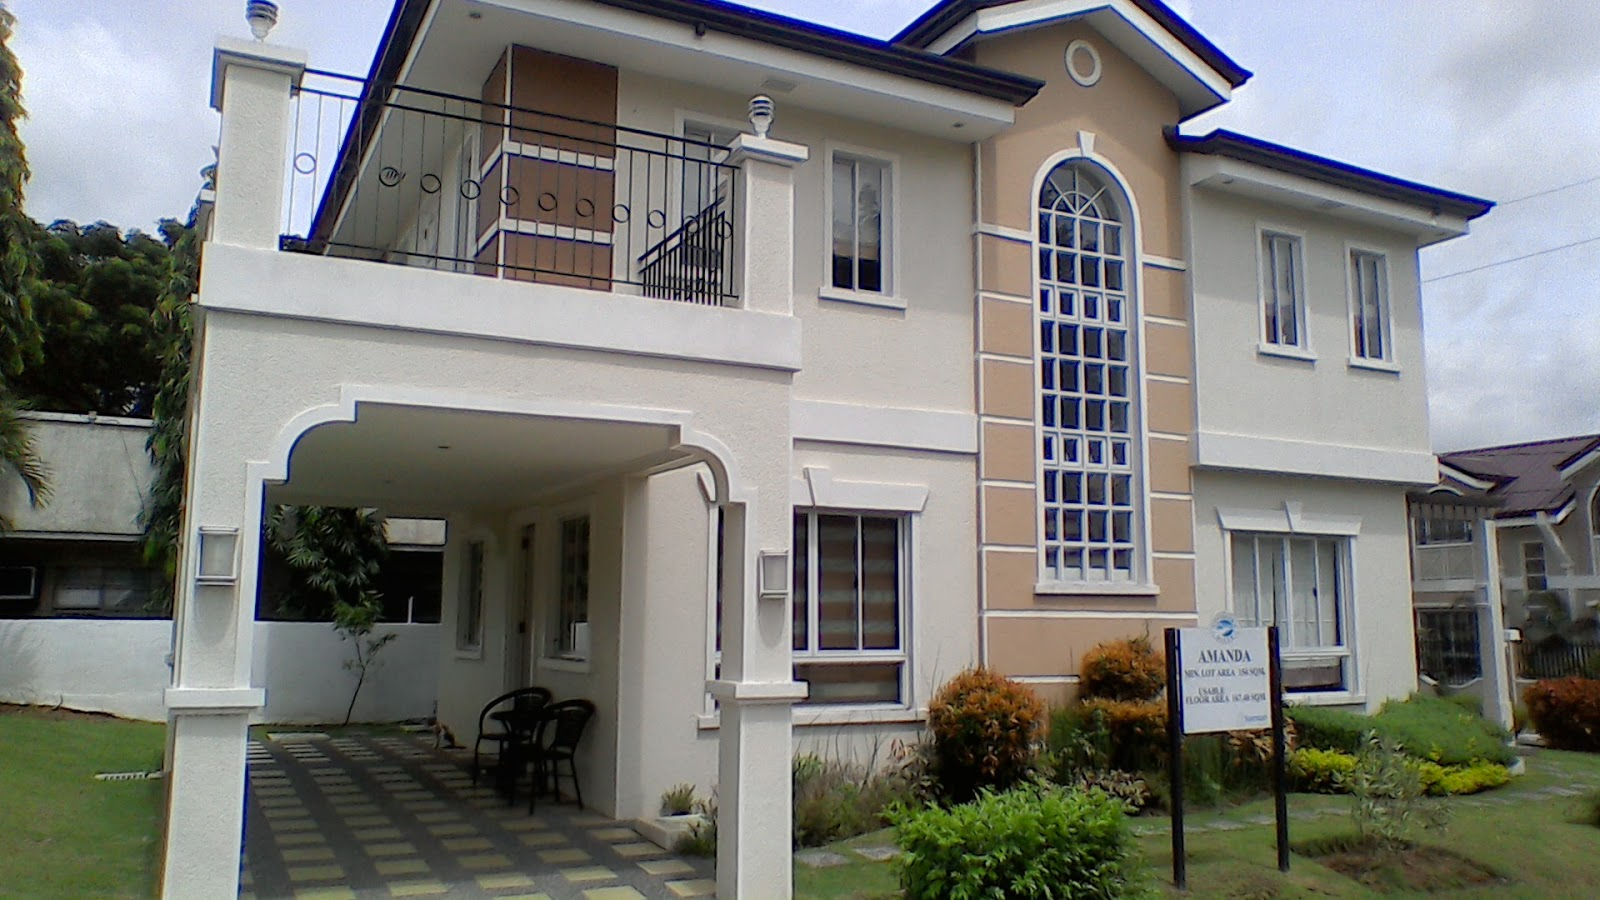 Amanda House and Lot for sale in General Trias Cavite,